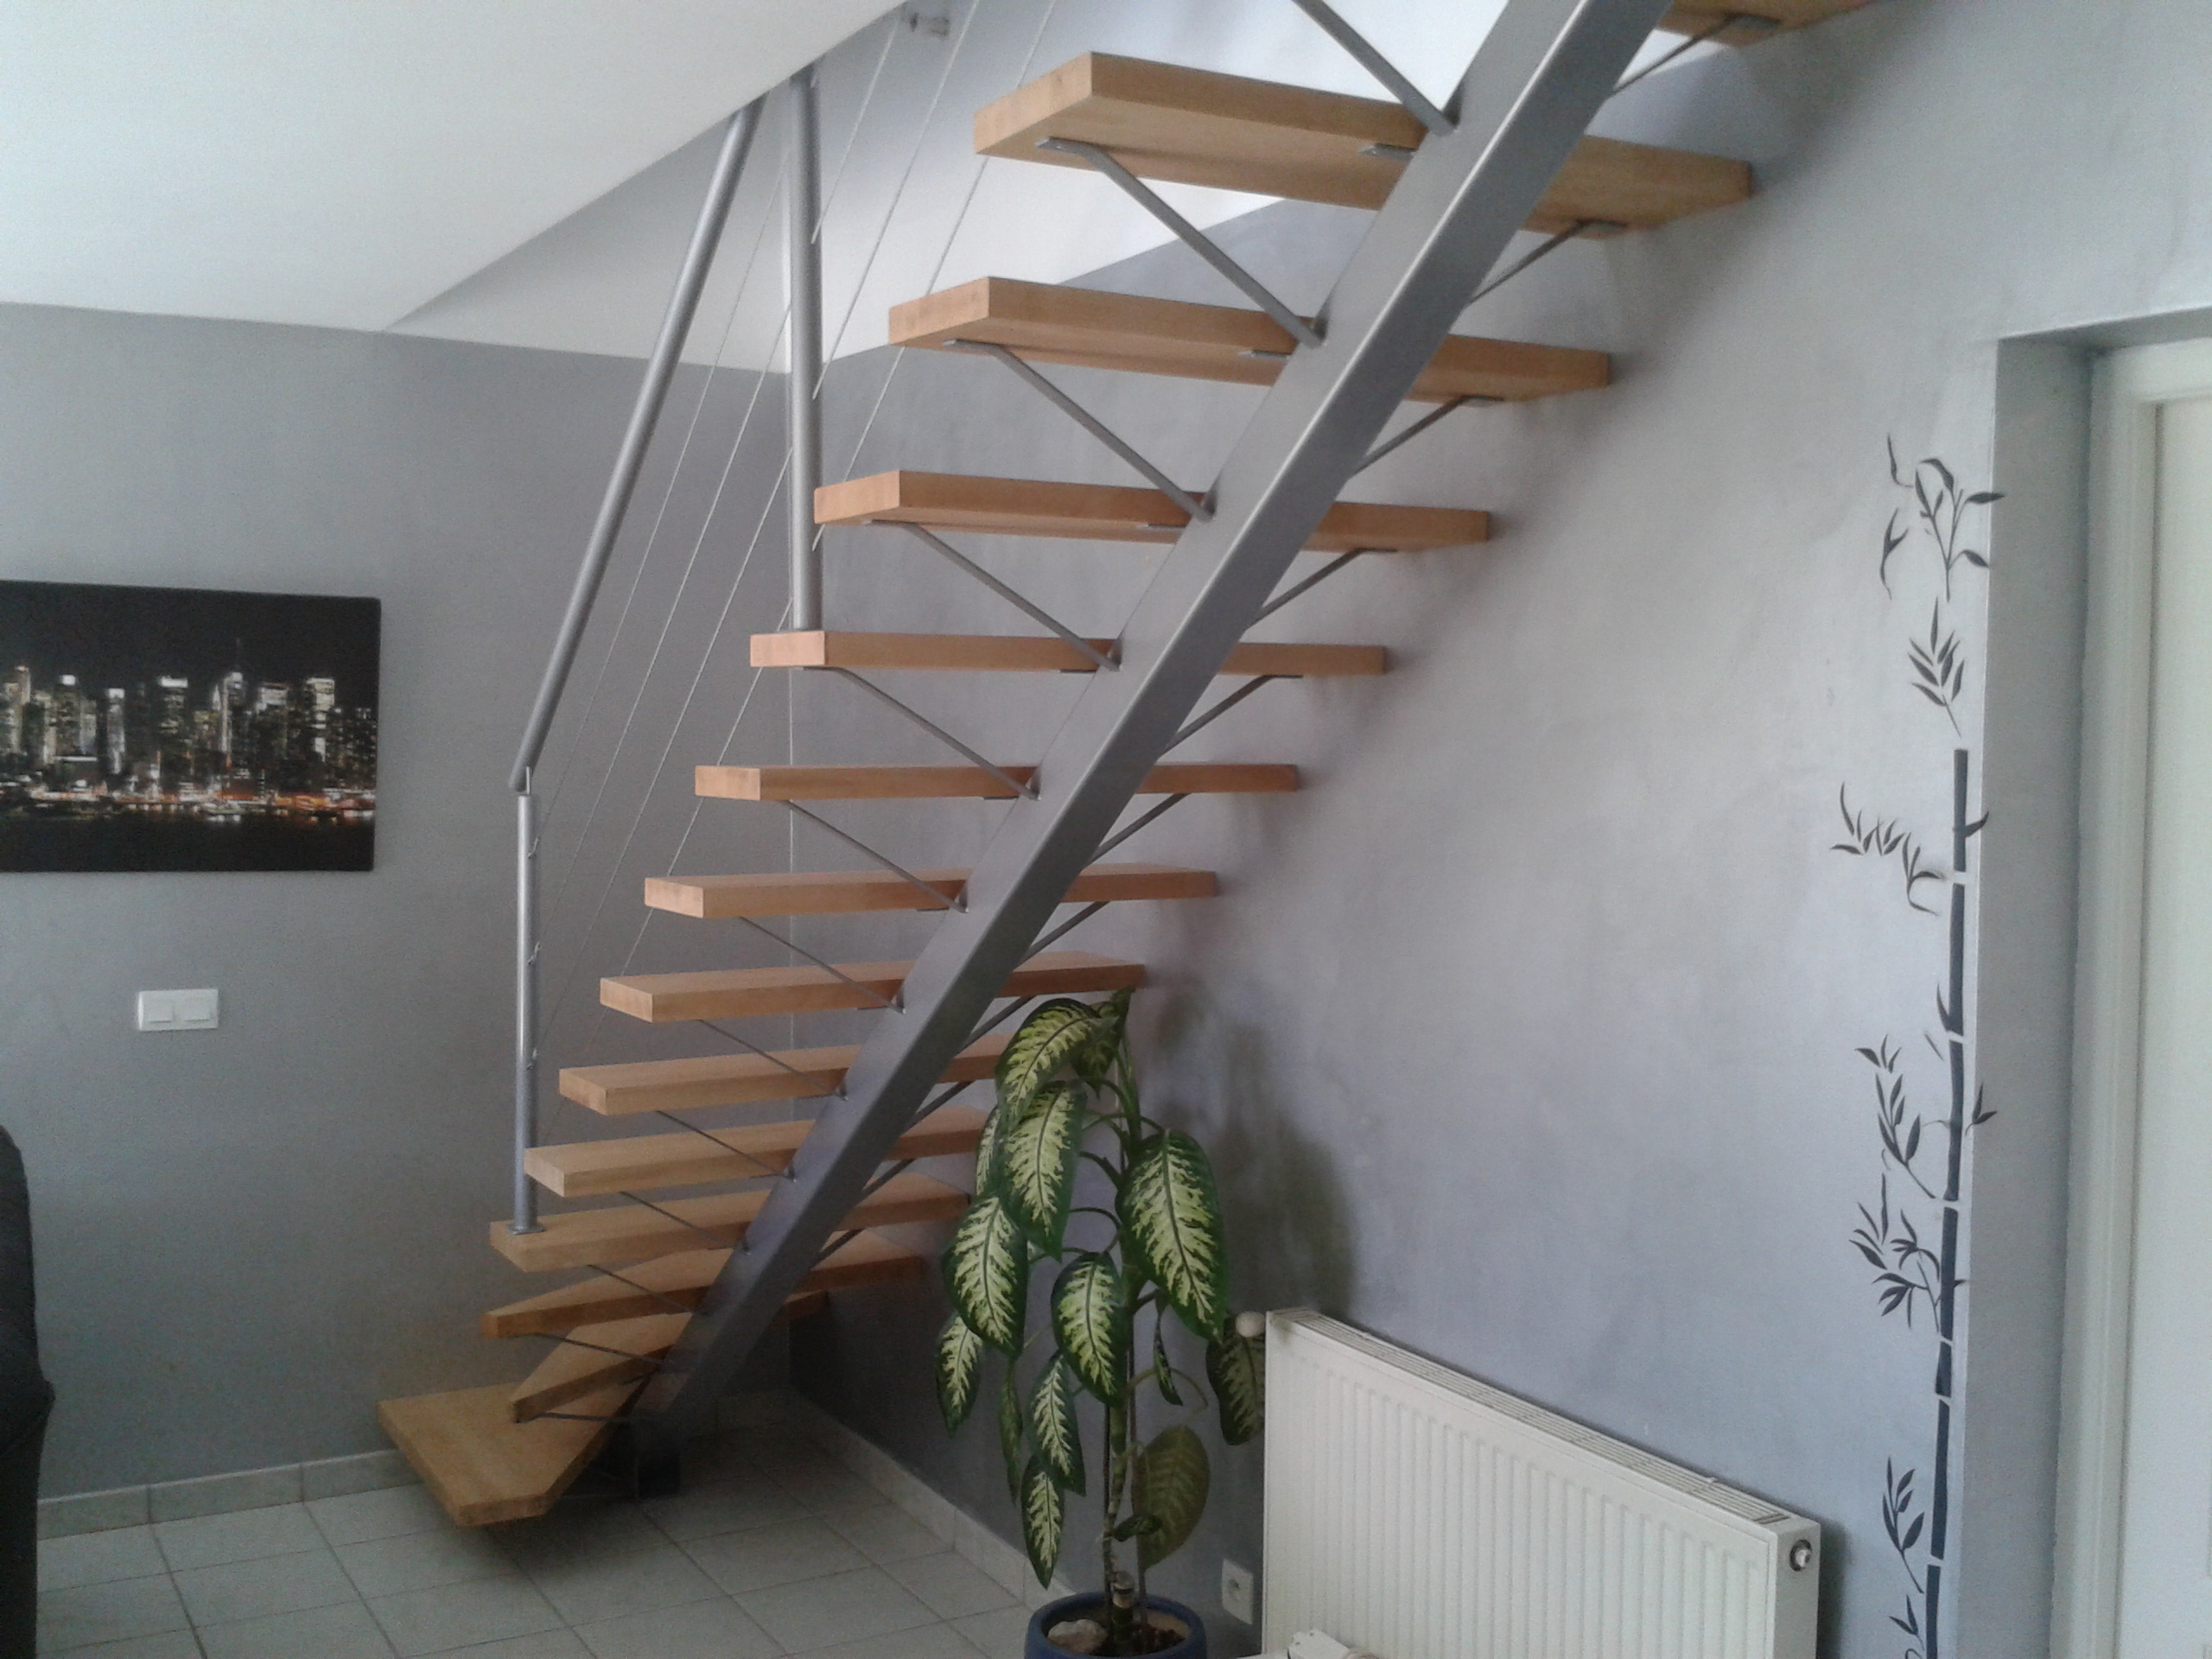 Escalier limon central jhm construction m tallique - Escalier a limon central metallique ...